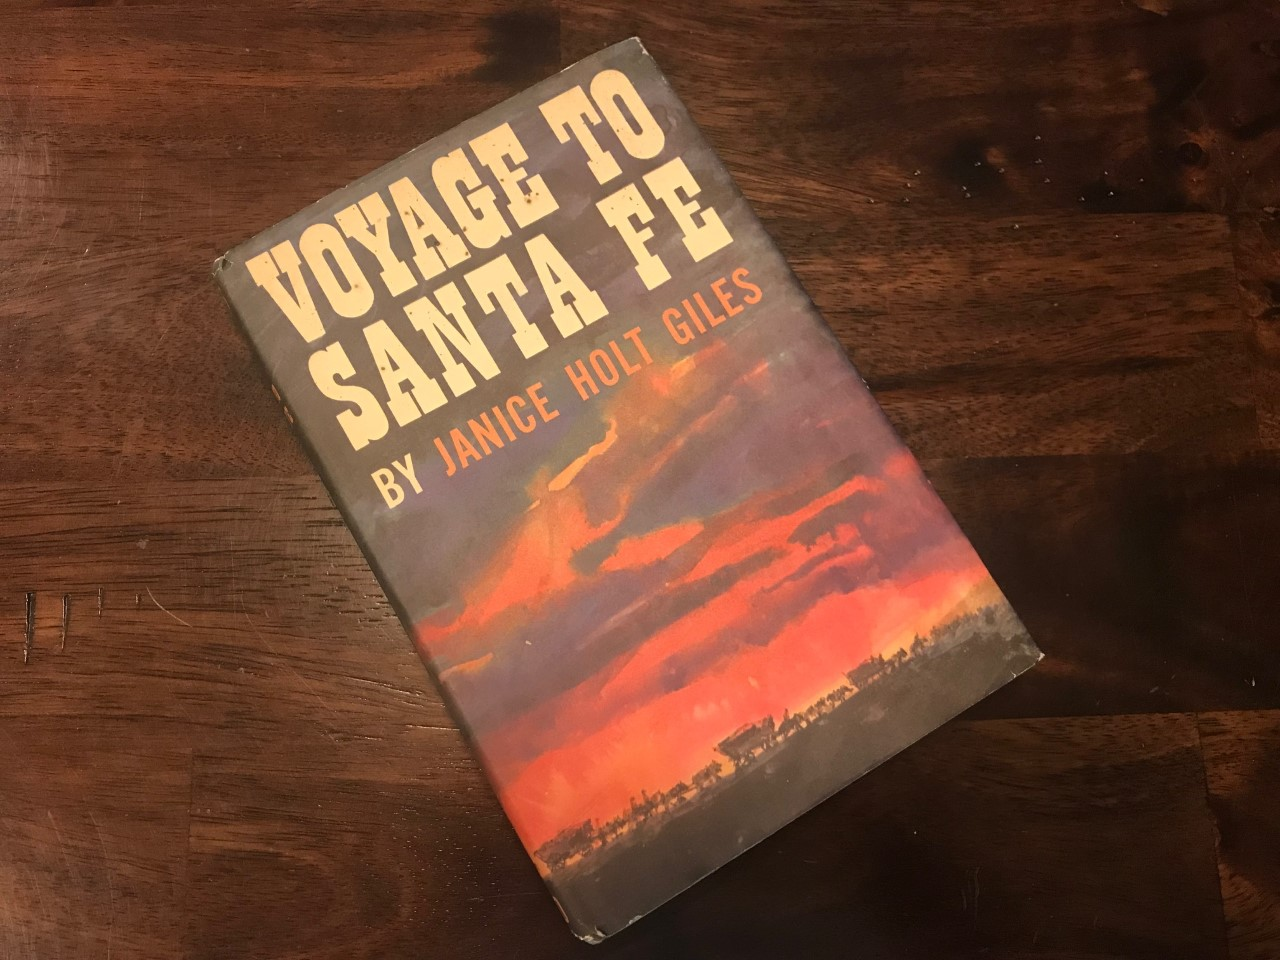 Voyage to Santa Fe is just one of the many books written about the famous trading trail. (Photo by J. Schafer)